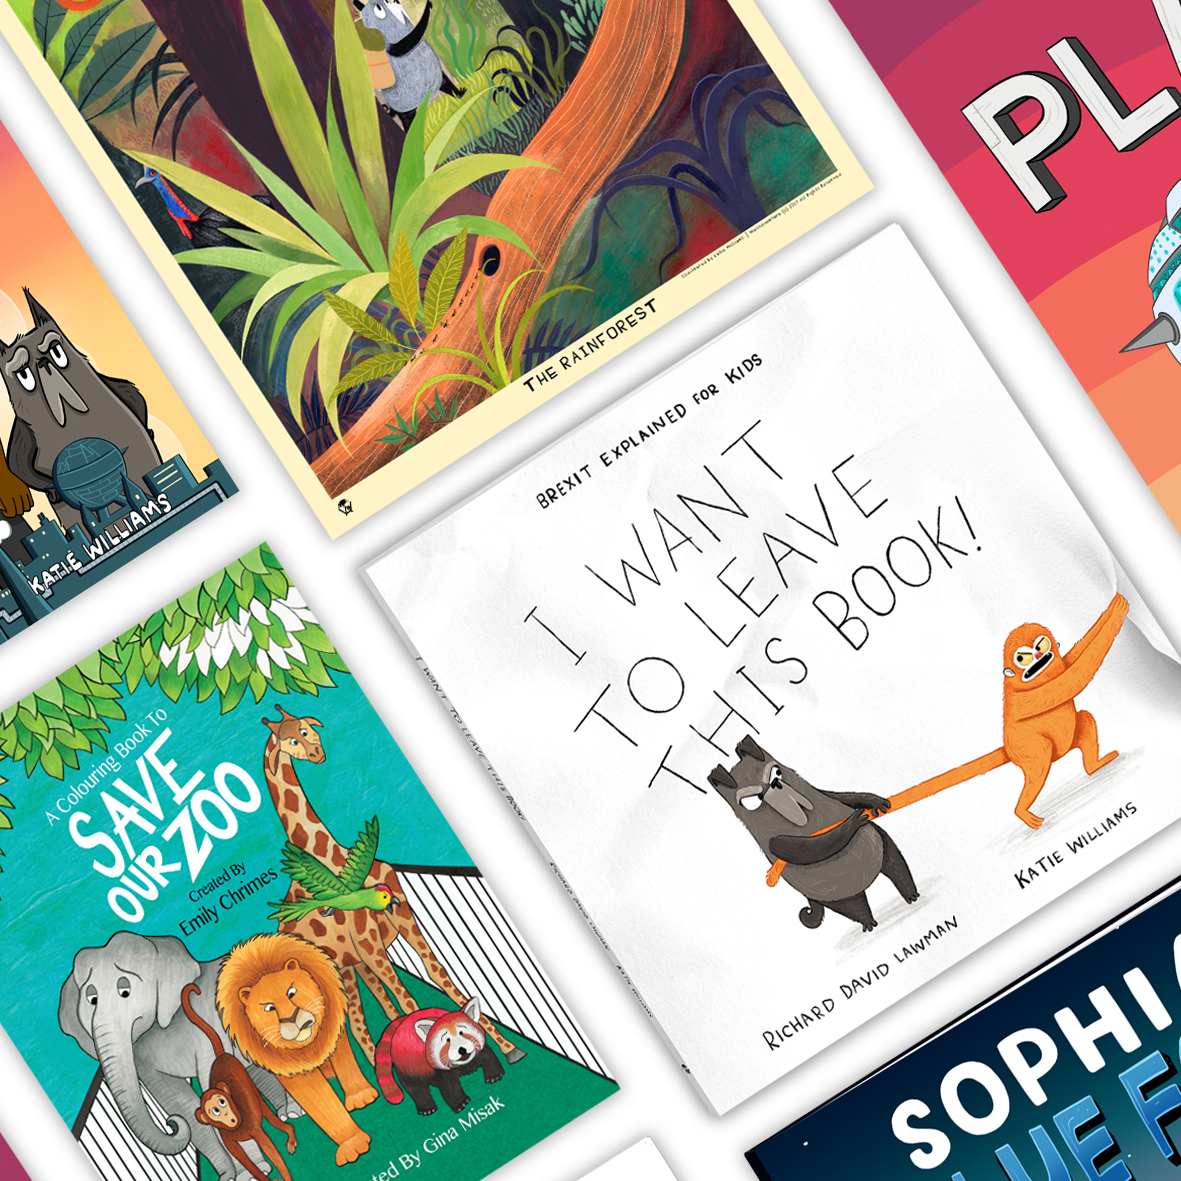 Happy #worldbookday!  Thank you so much to everyone who has bought one of our books, backed a project or entered one of our competitions in the last year. It's been a tough one as a small independent publisher and we couldn't do it without you 💚  What are you reading today?